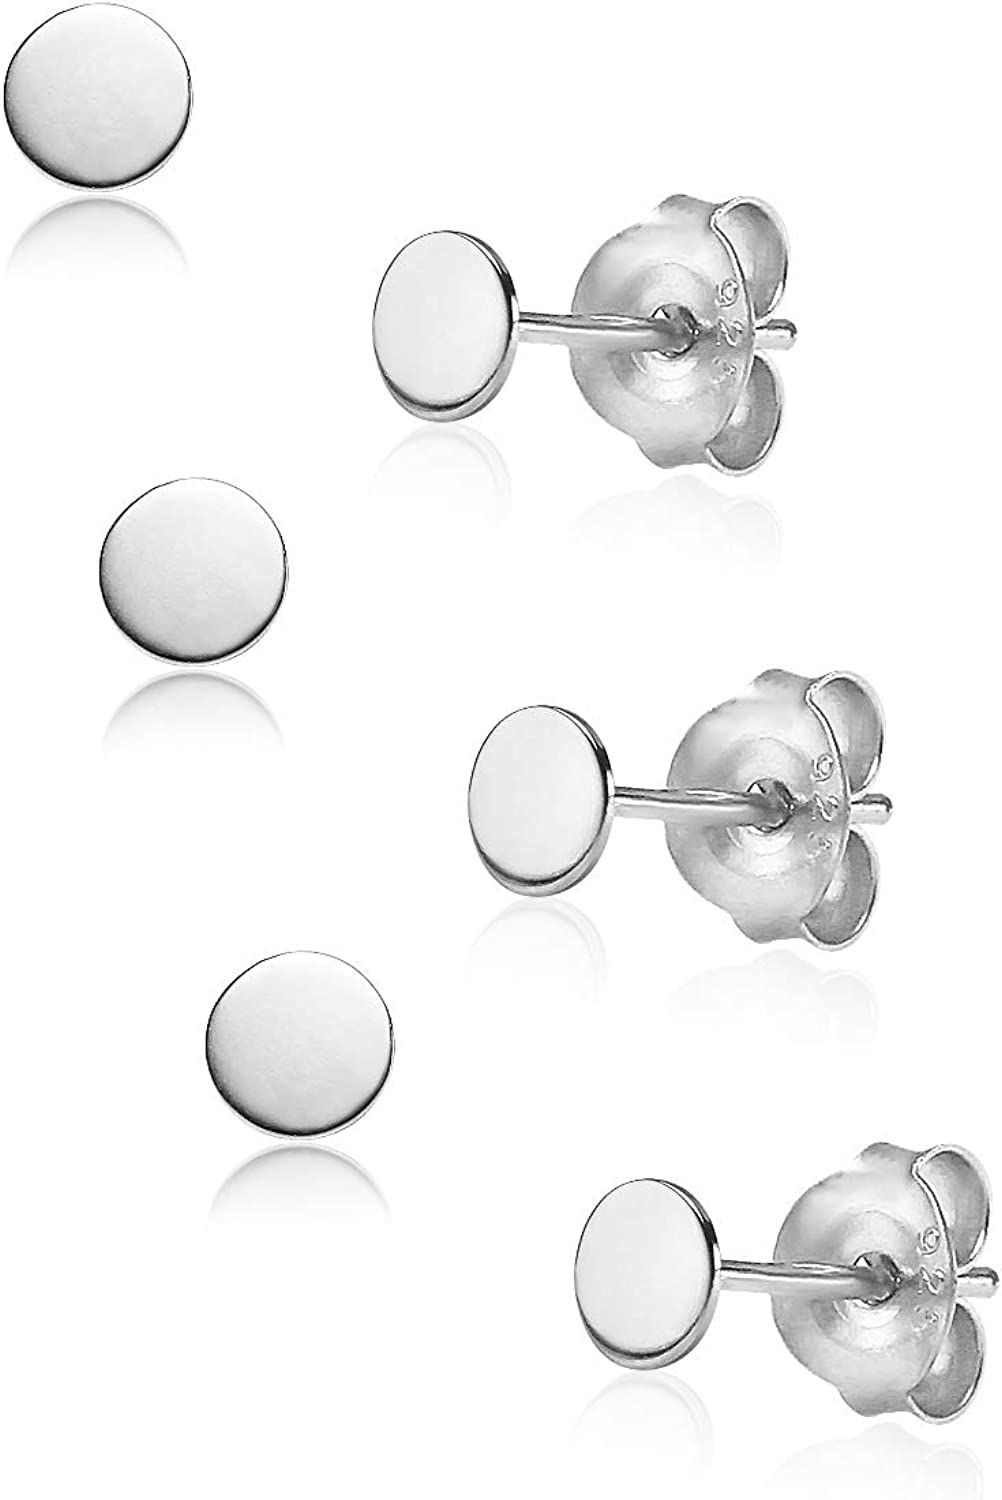 Big Apple Hoops - High Polished Sterling Silver 3 Pairs Set Pack of 3mm or 3, 4, 5mm Plain Round Flat Stud Earrings Made from Real 925 Sterling Silver in 4 Color Silver, Rose, Gold, Black